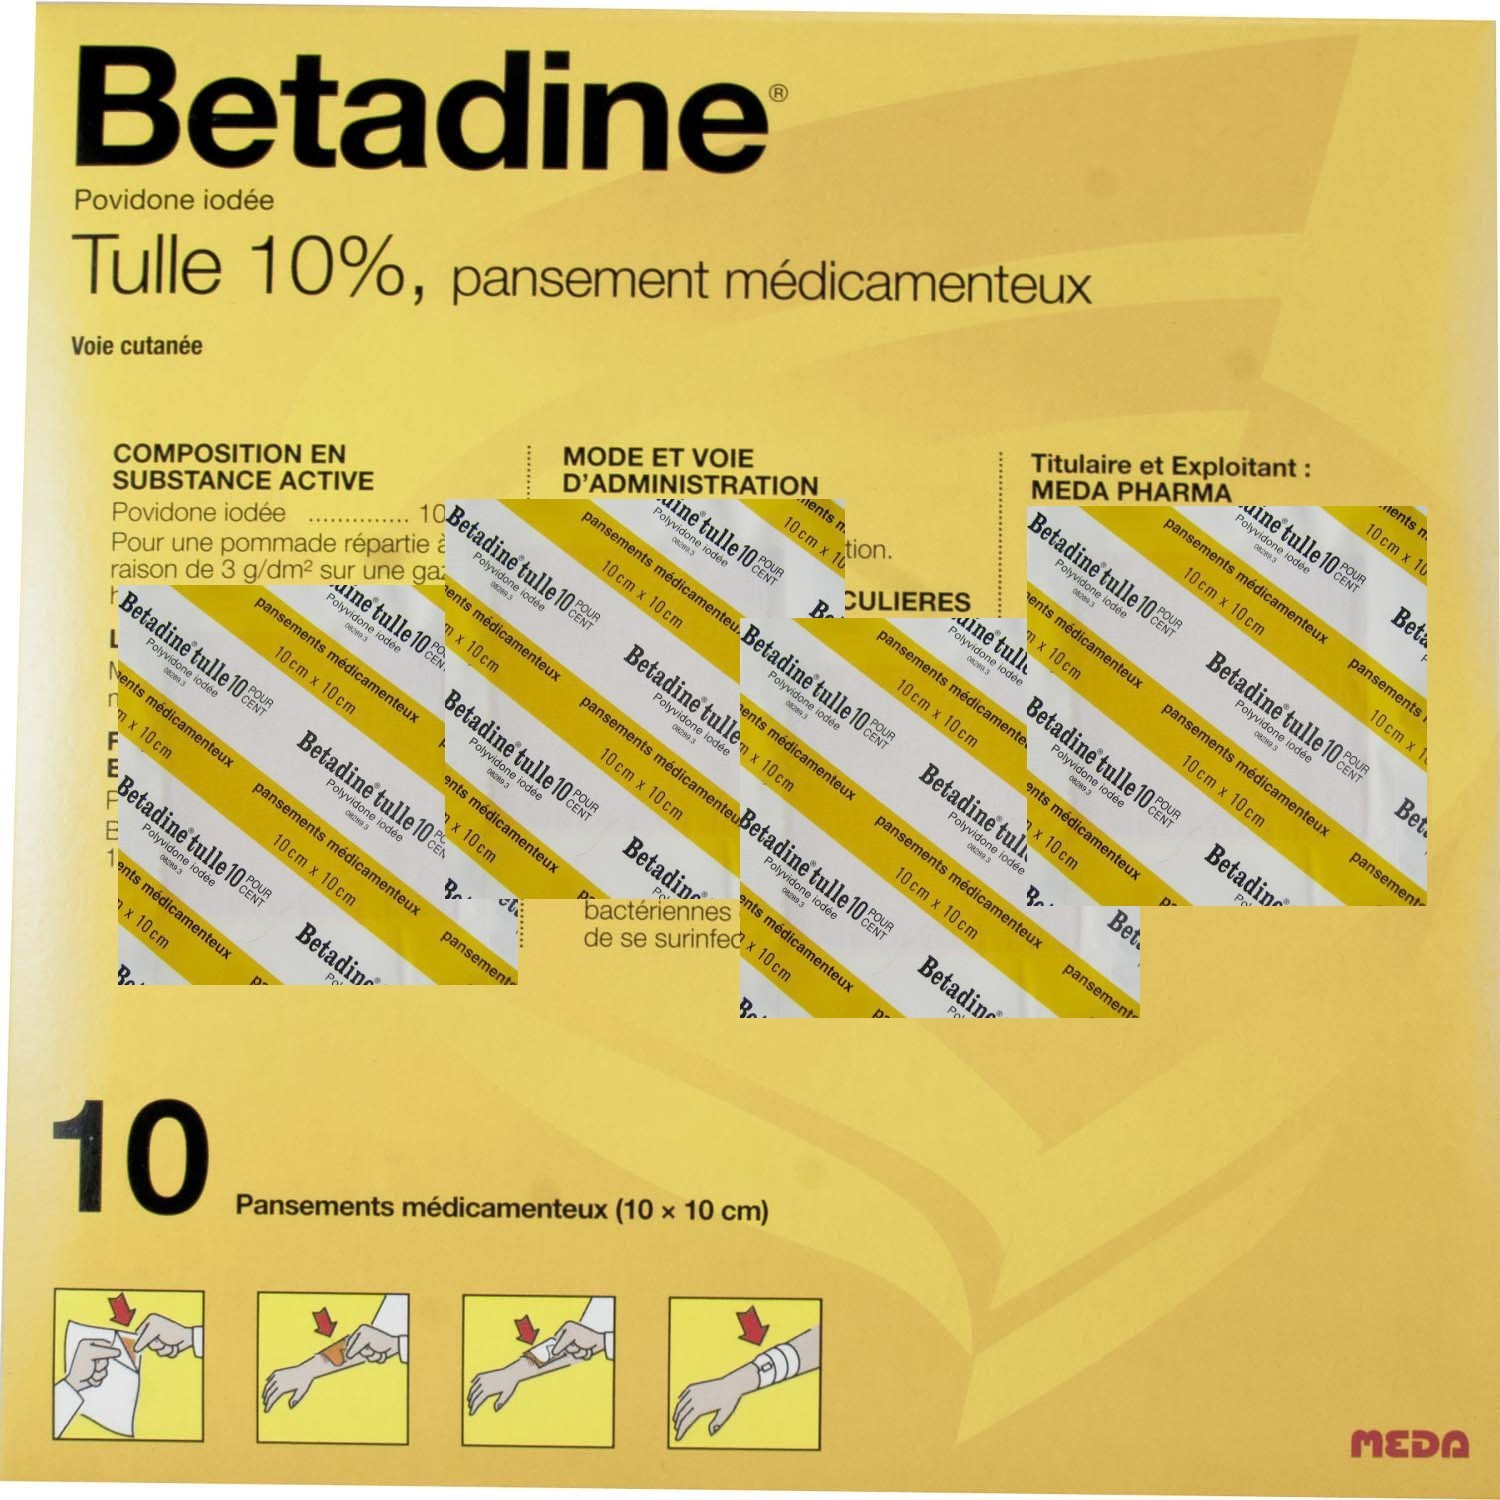 The drug Betadine (candles): when pregnancy is possible or not 51